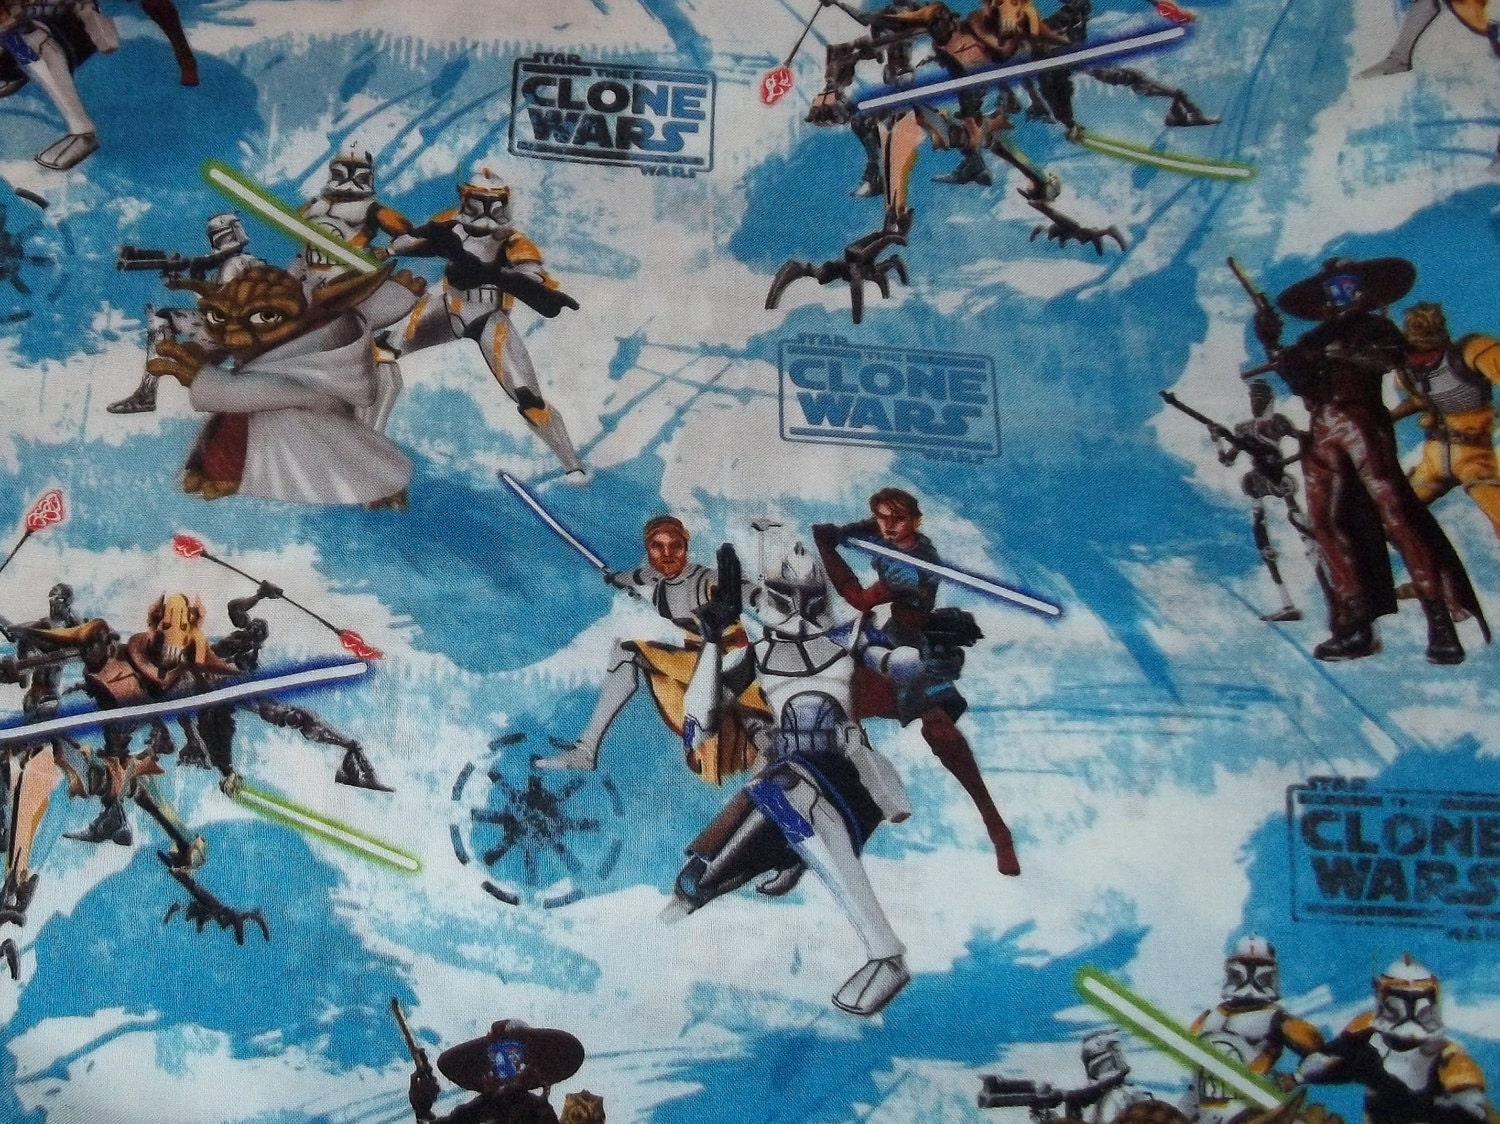 Star wars clone wars fabric by the yard for Star wars fabric